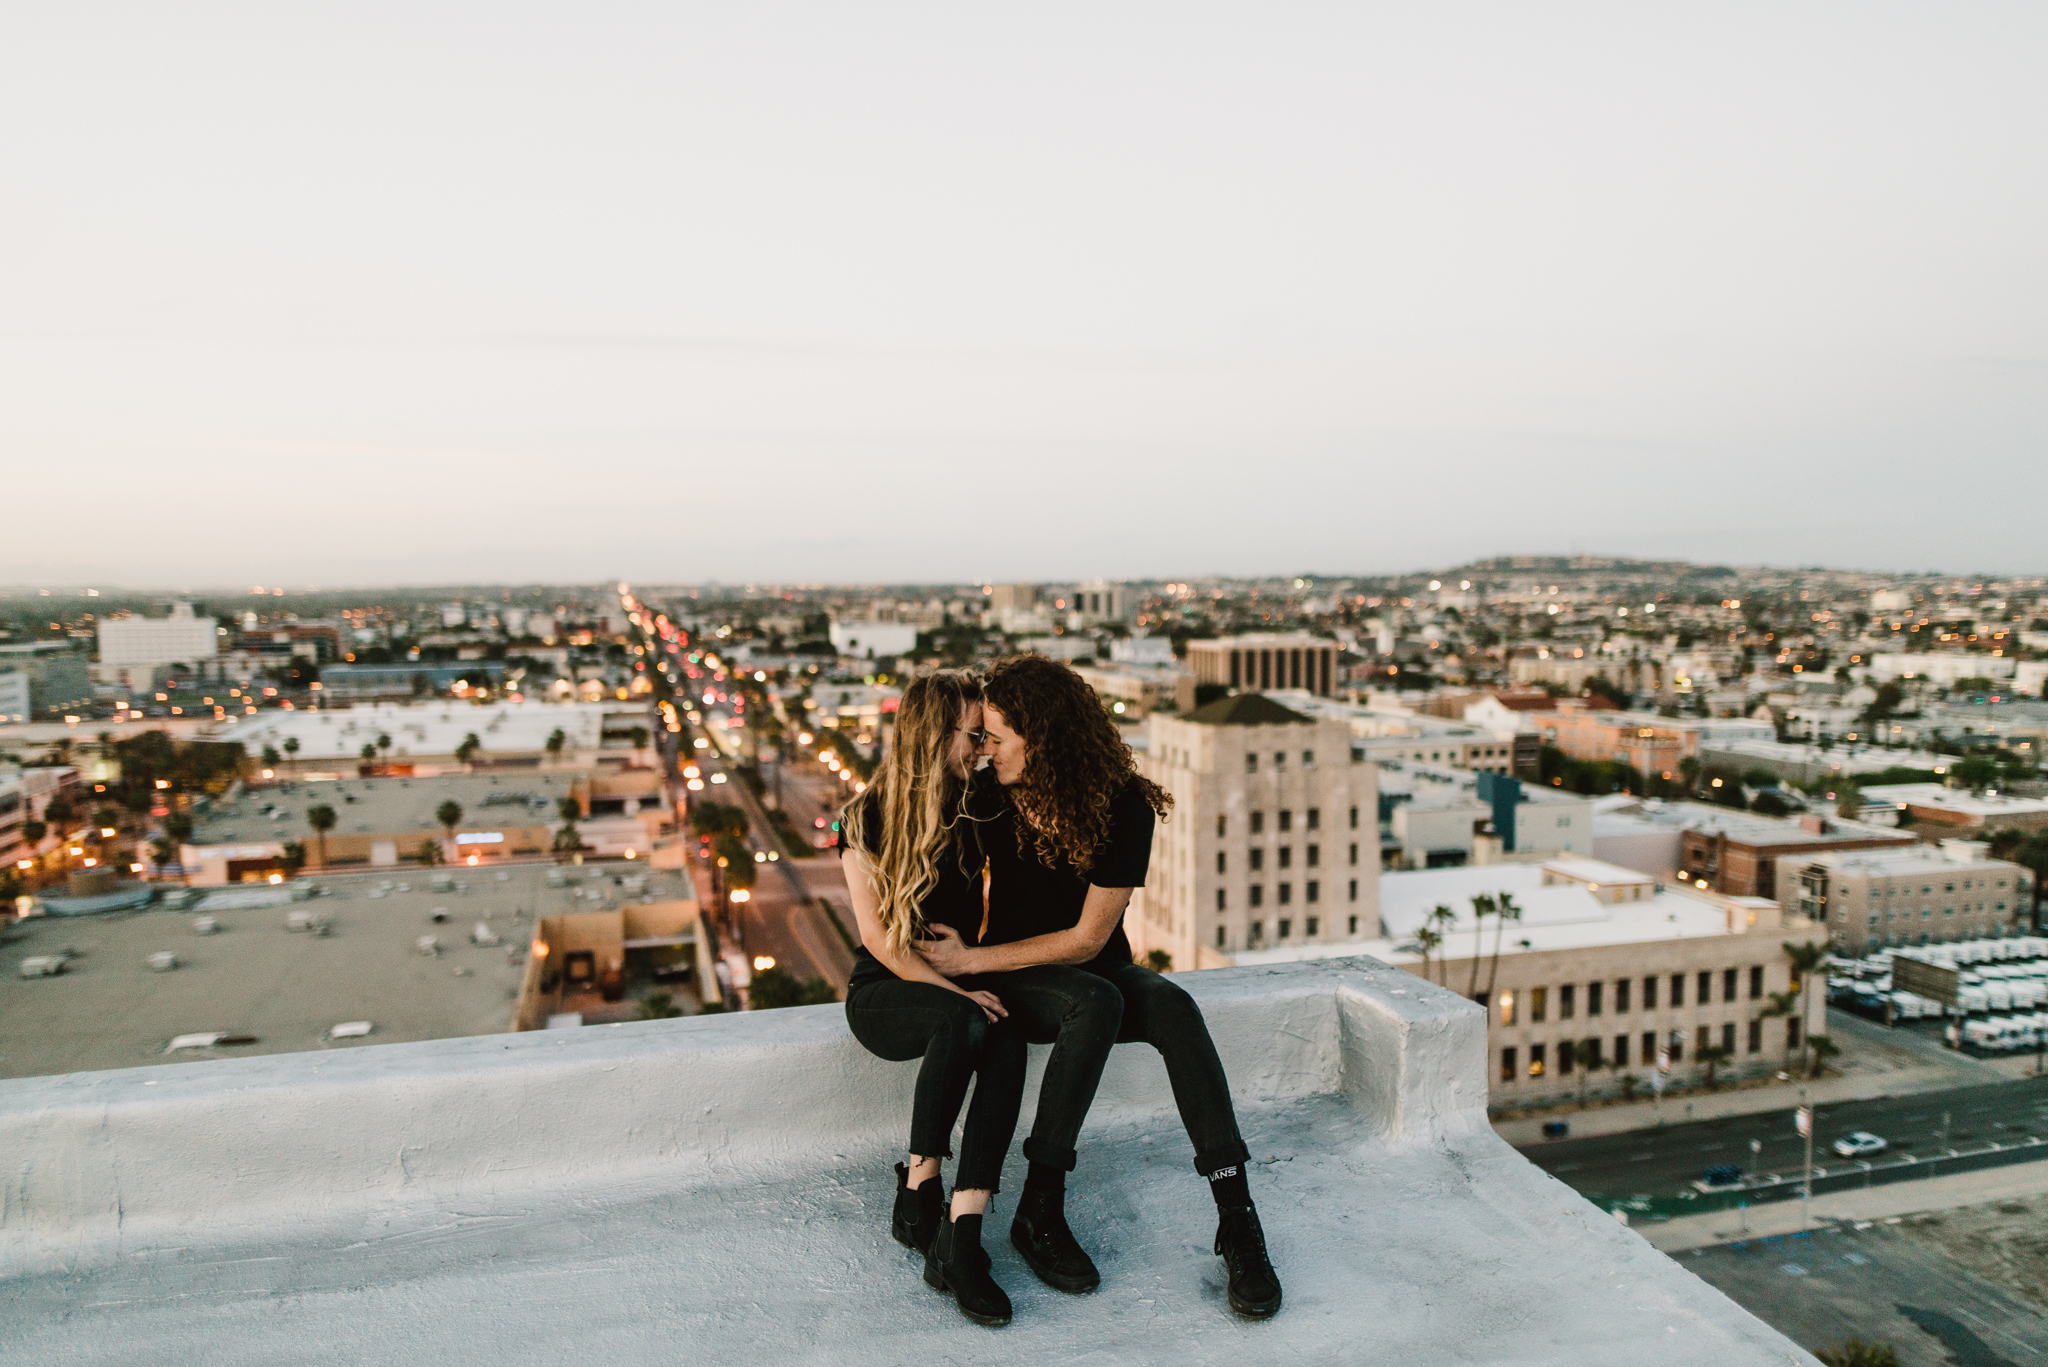 ©Isaiah-&-Taylor-Photography---Urban-Rooftop-Engagement,-Los-Angeles-Wedding-Photographer-045.jpg